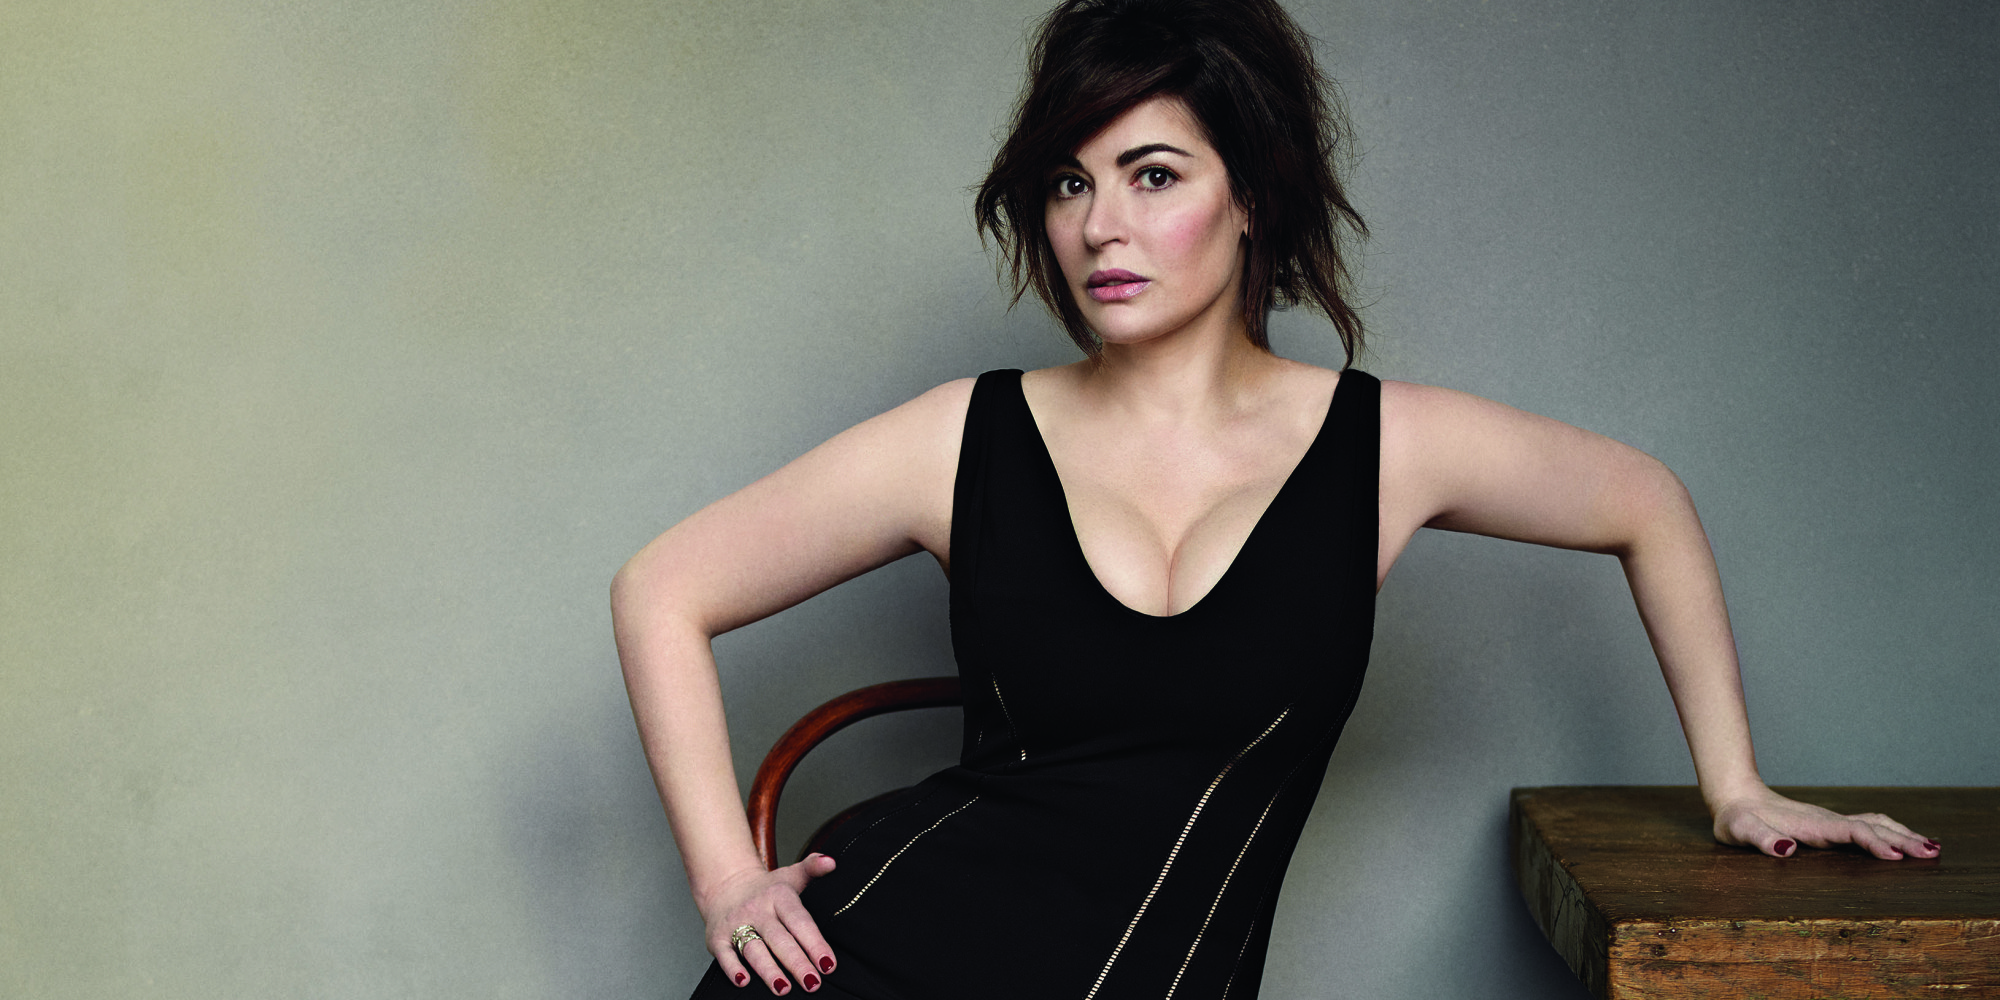 Nigella lawson talks dirty